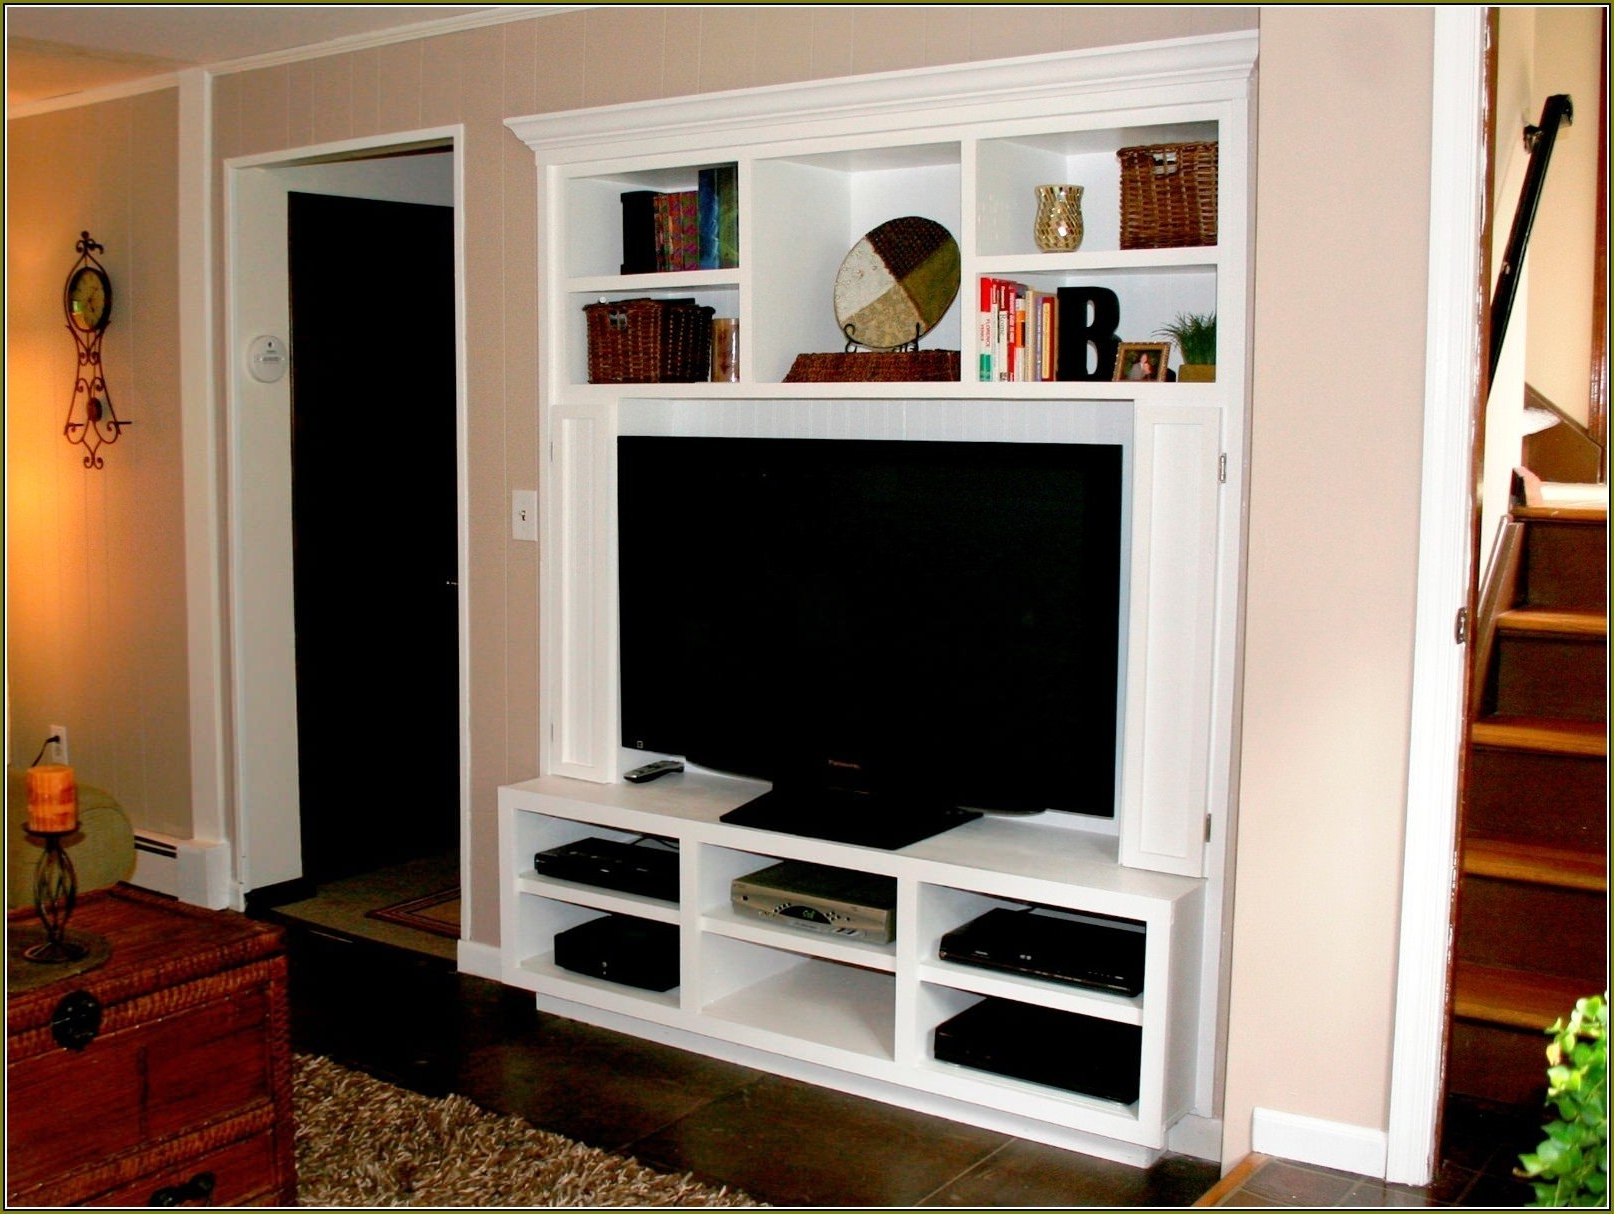 Fashionable Wall Mounted Tv Cabinets For Flat Screens Inside Wall Mounted Tv Cabinets For Flat Screens — Allin The Details : Tips (View 3 of 20)